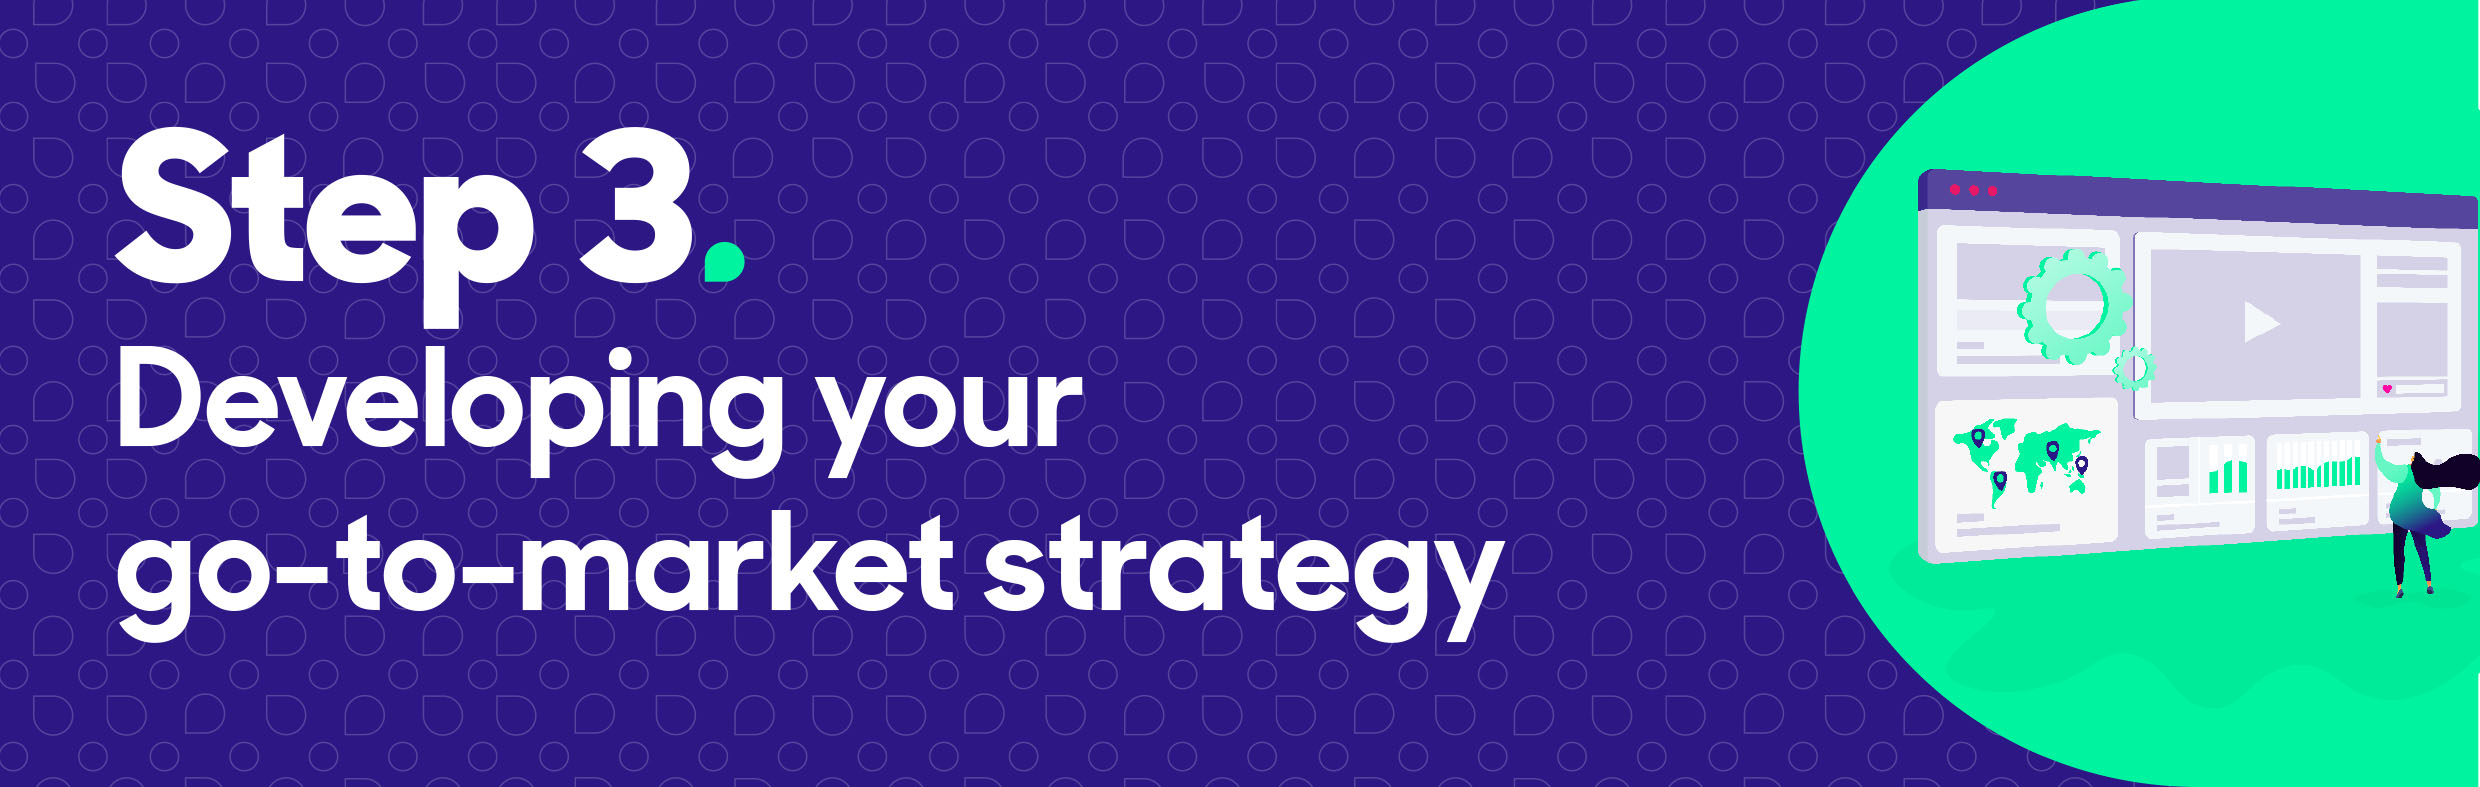 developing your go-to-market strategy